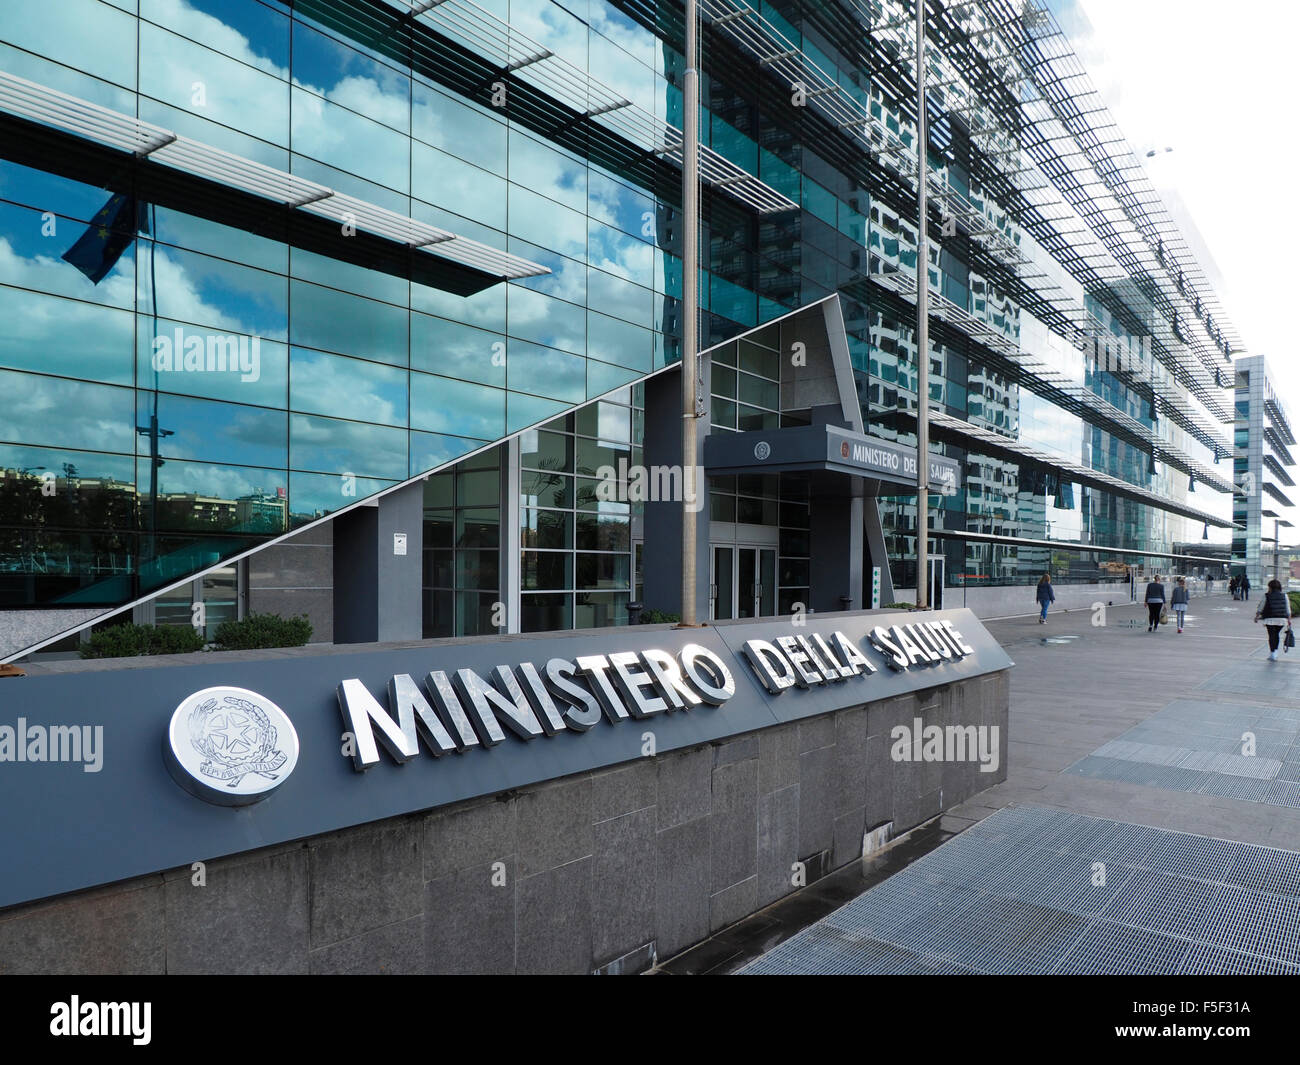 The Italian Ministry of Health building in the EUR district of Rome, Italy - Stock Image